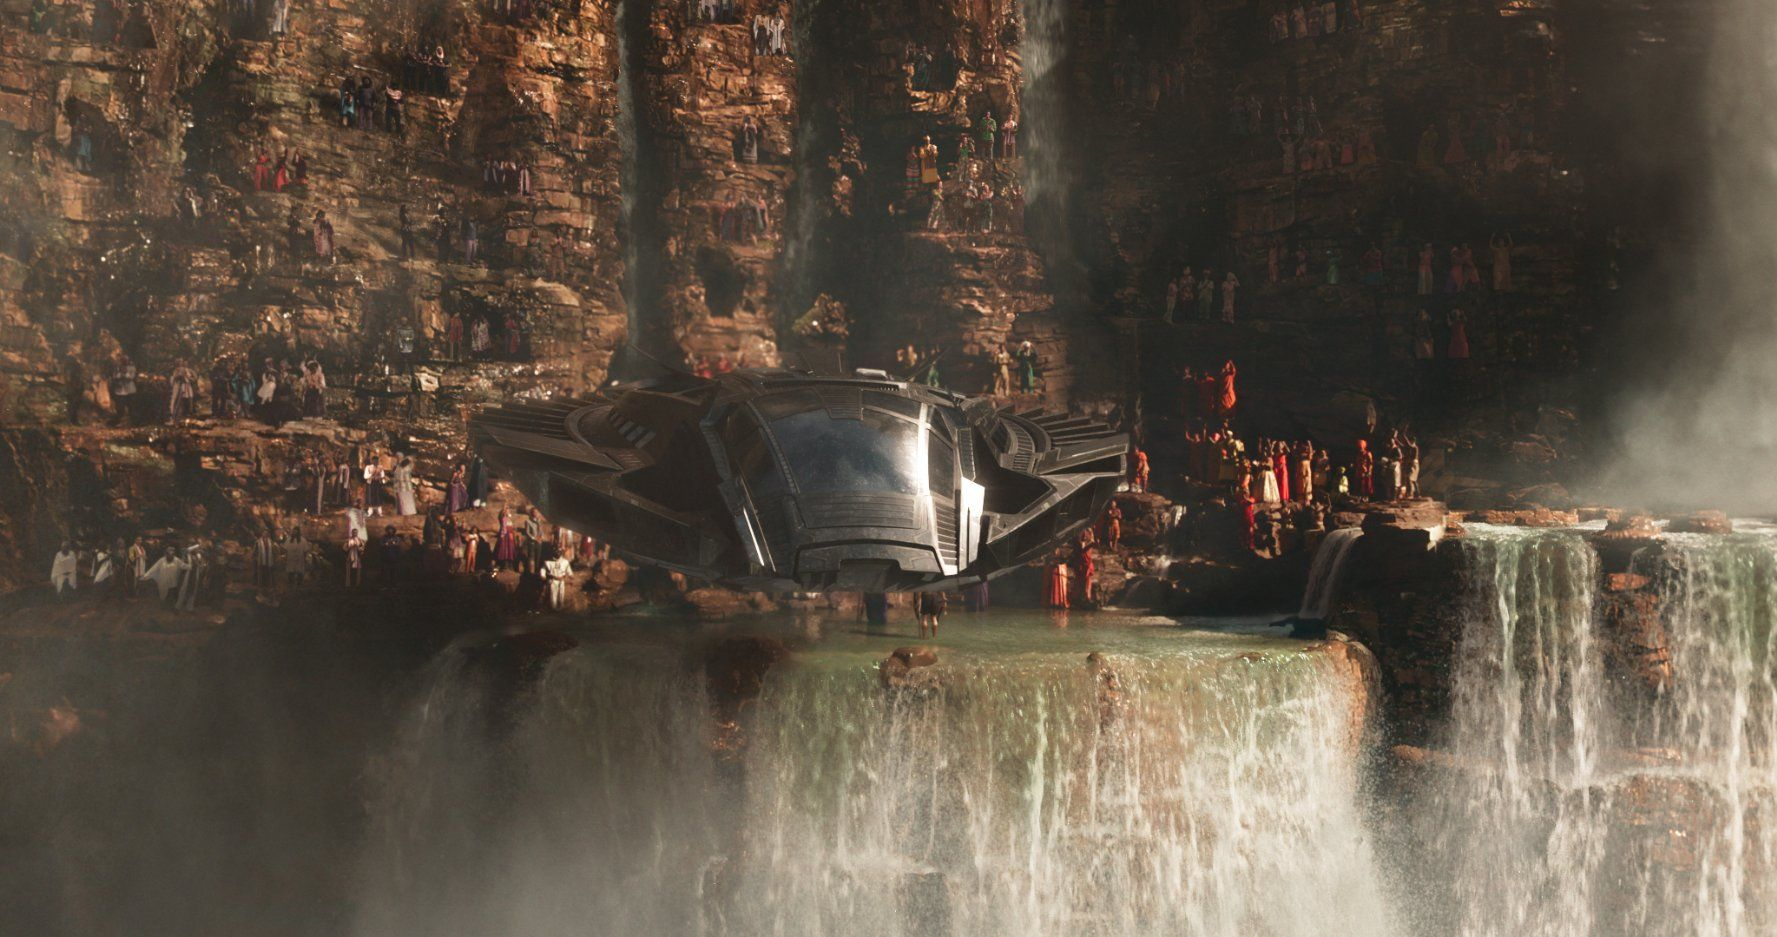 Many people gathered alongside a waterfall as a spacecraft hovers